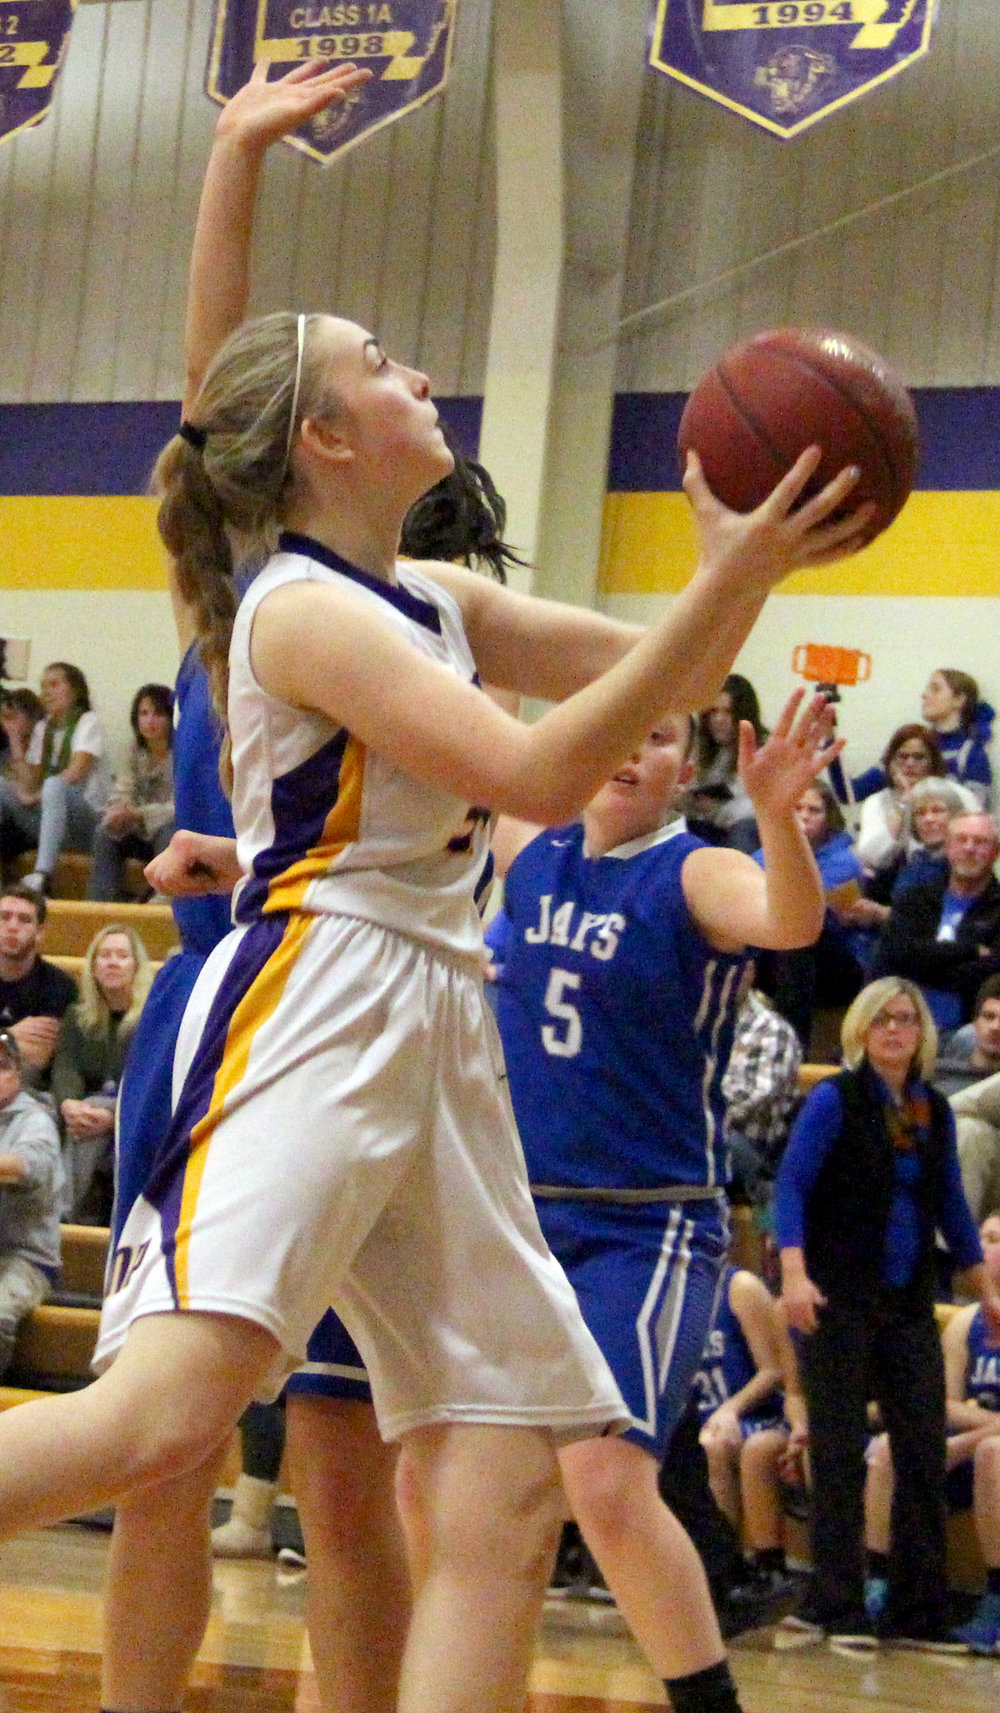 ROSS MARTIN/Citizen photo North Platte sophomore Janell Manville goes up for a layup against West Platte on Friday, Jan. 6 at North Platte High School in Dearborn, Mo.